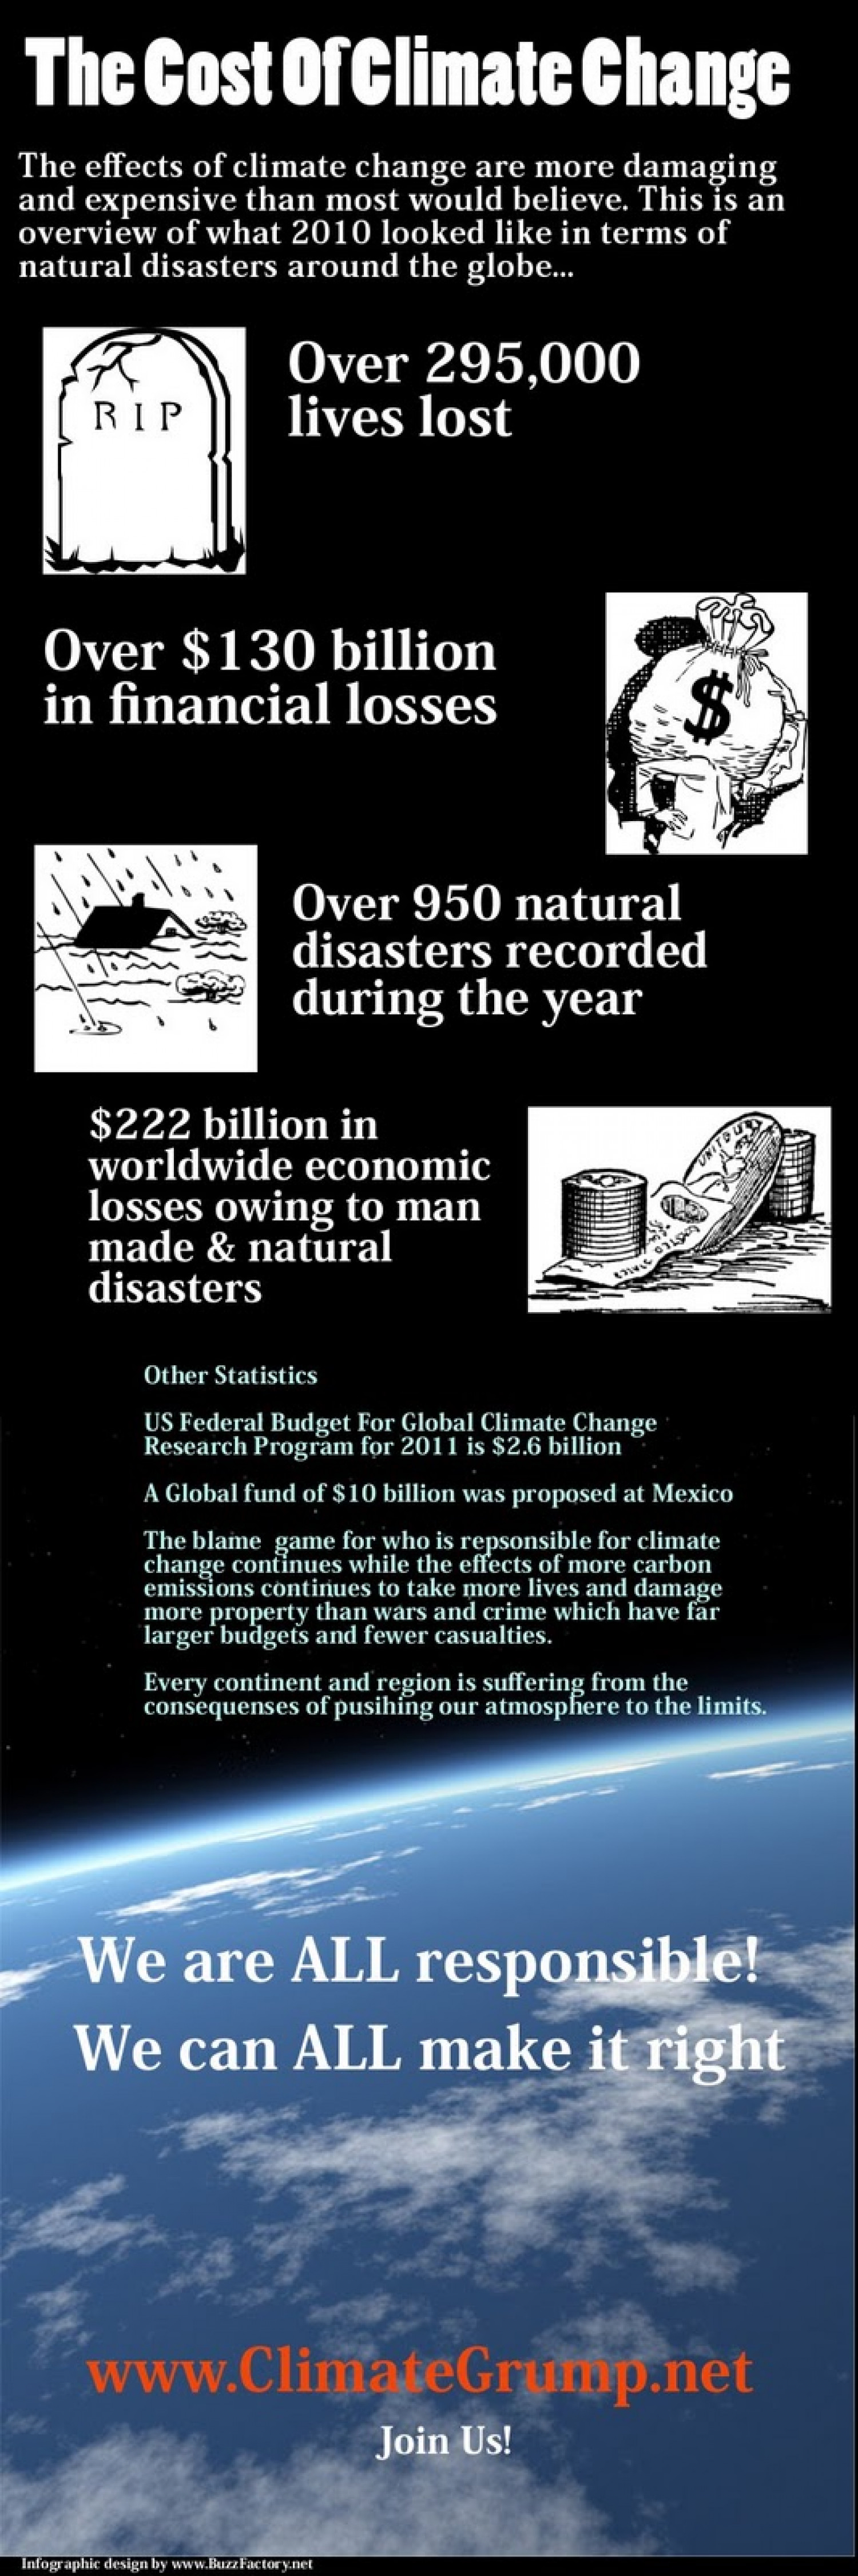 Effect of Climate Change Infographic